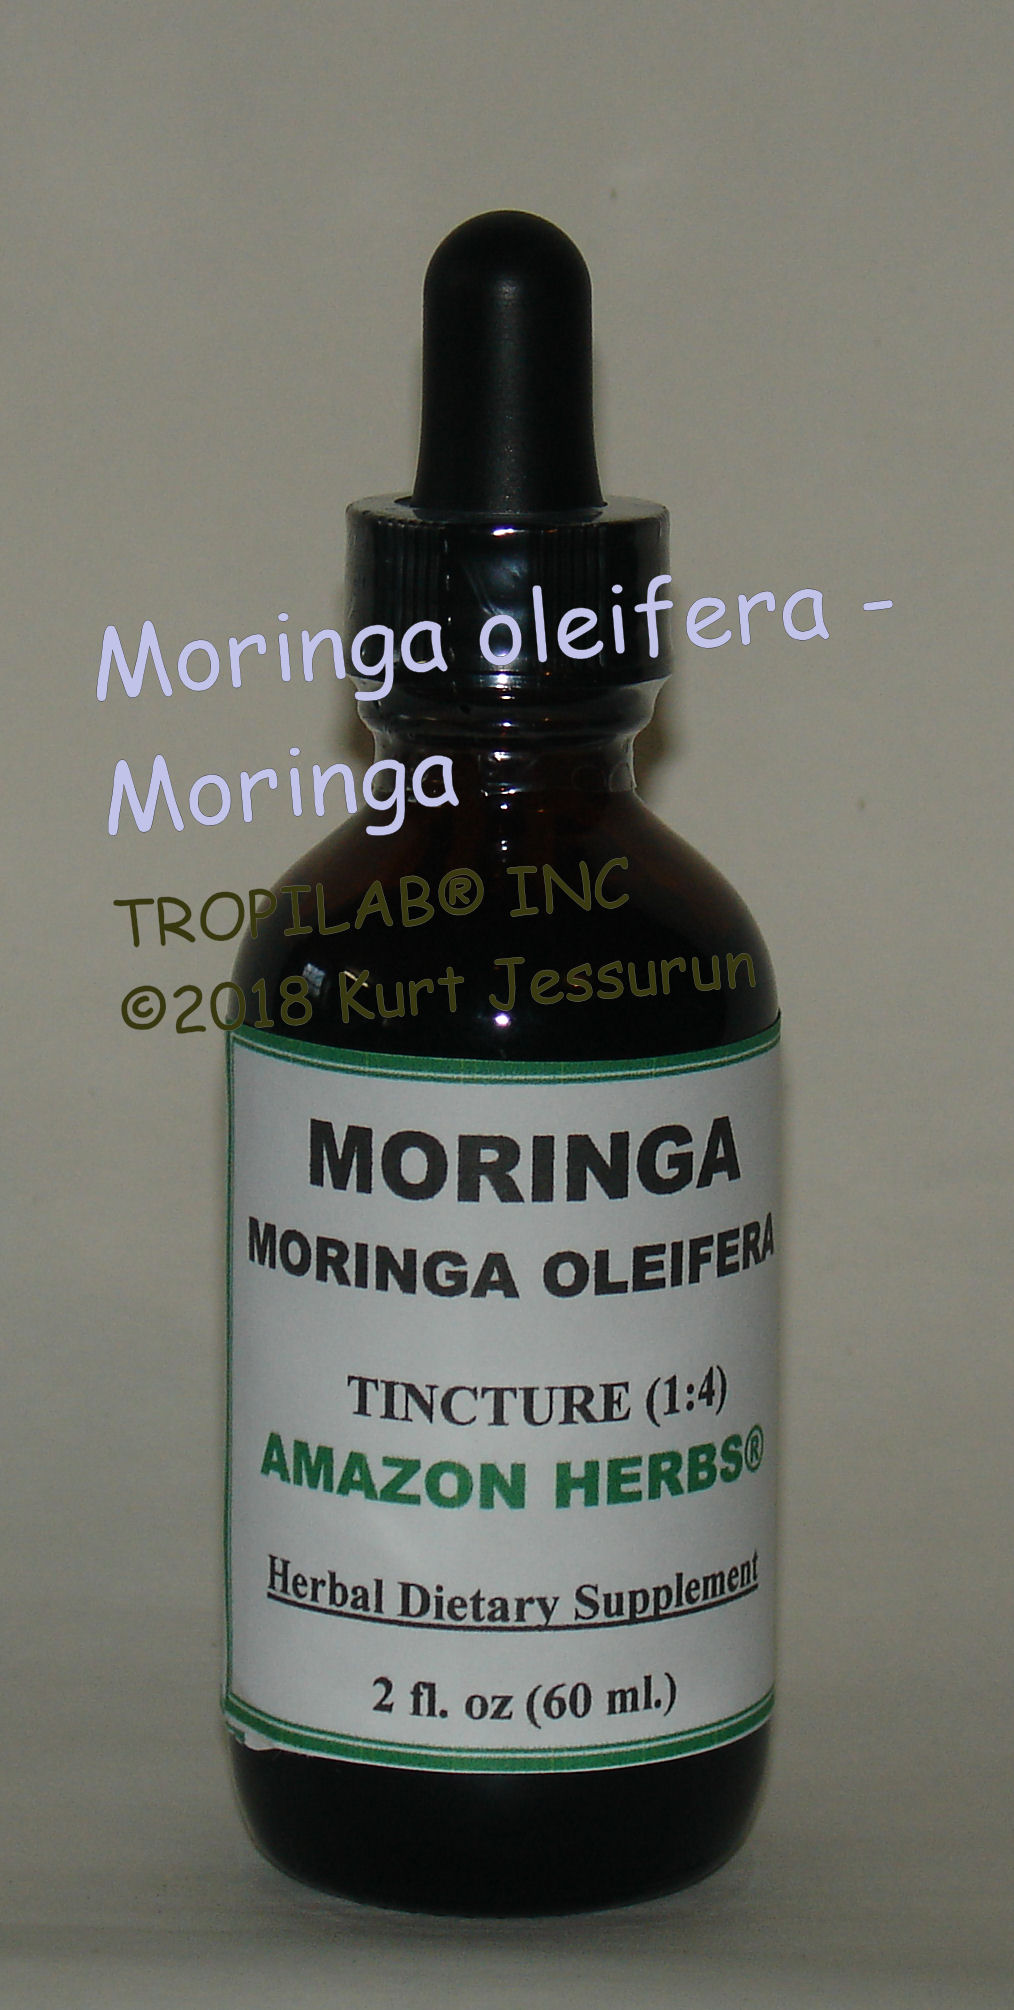 Moringa oleifera tincture - Tropilab. Has many medicinal applications such as 